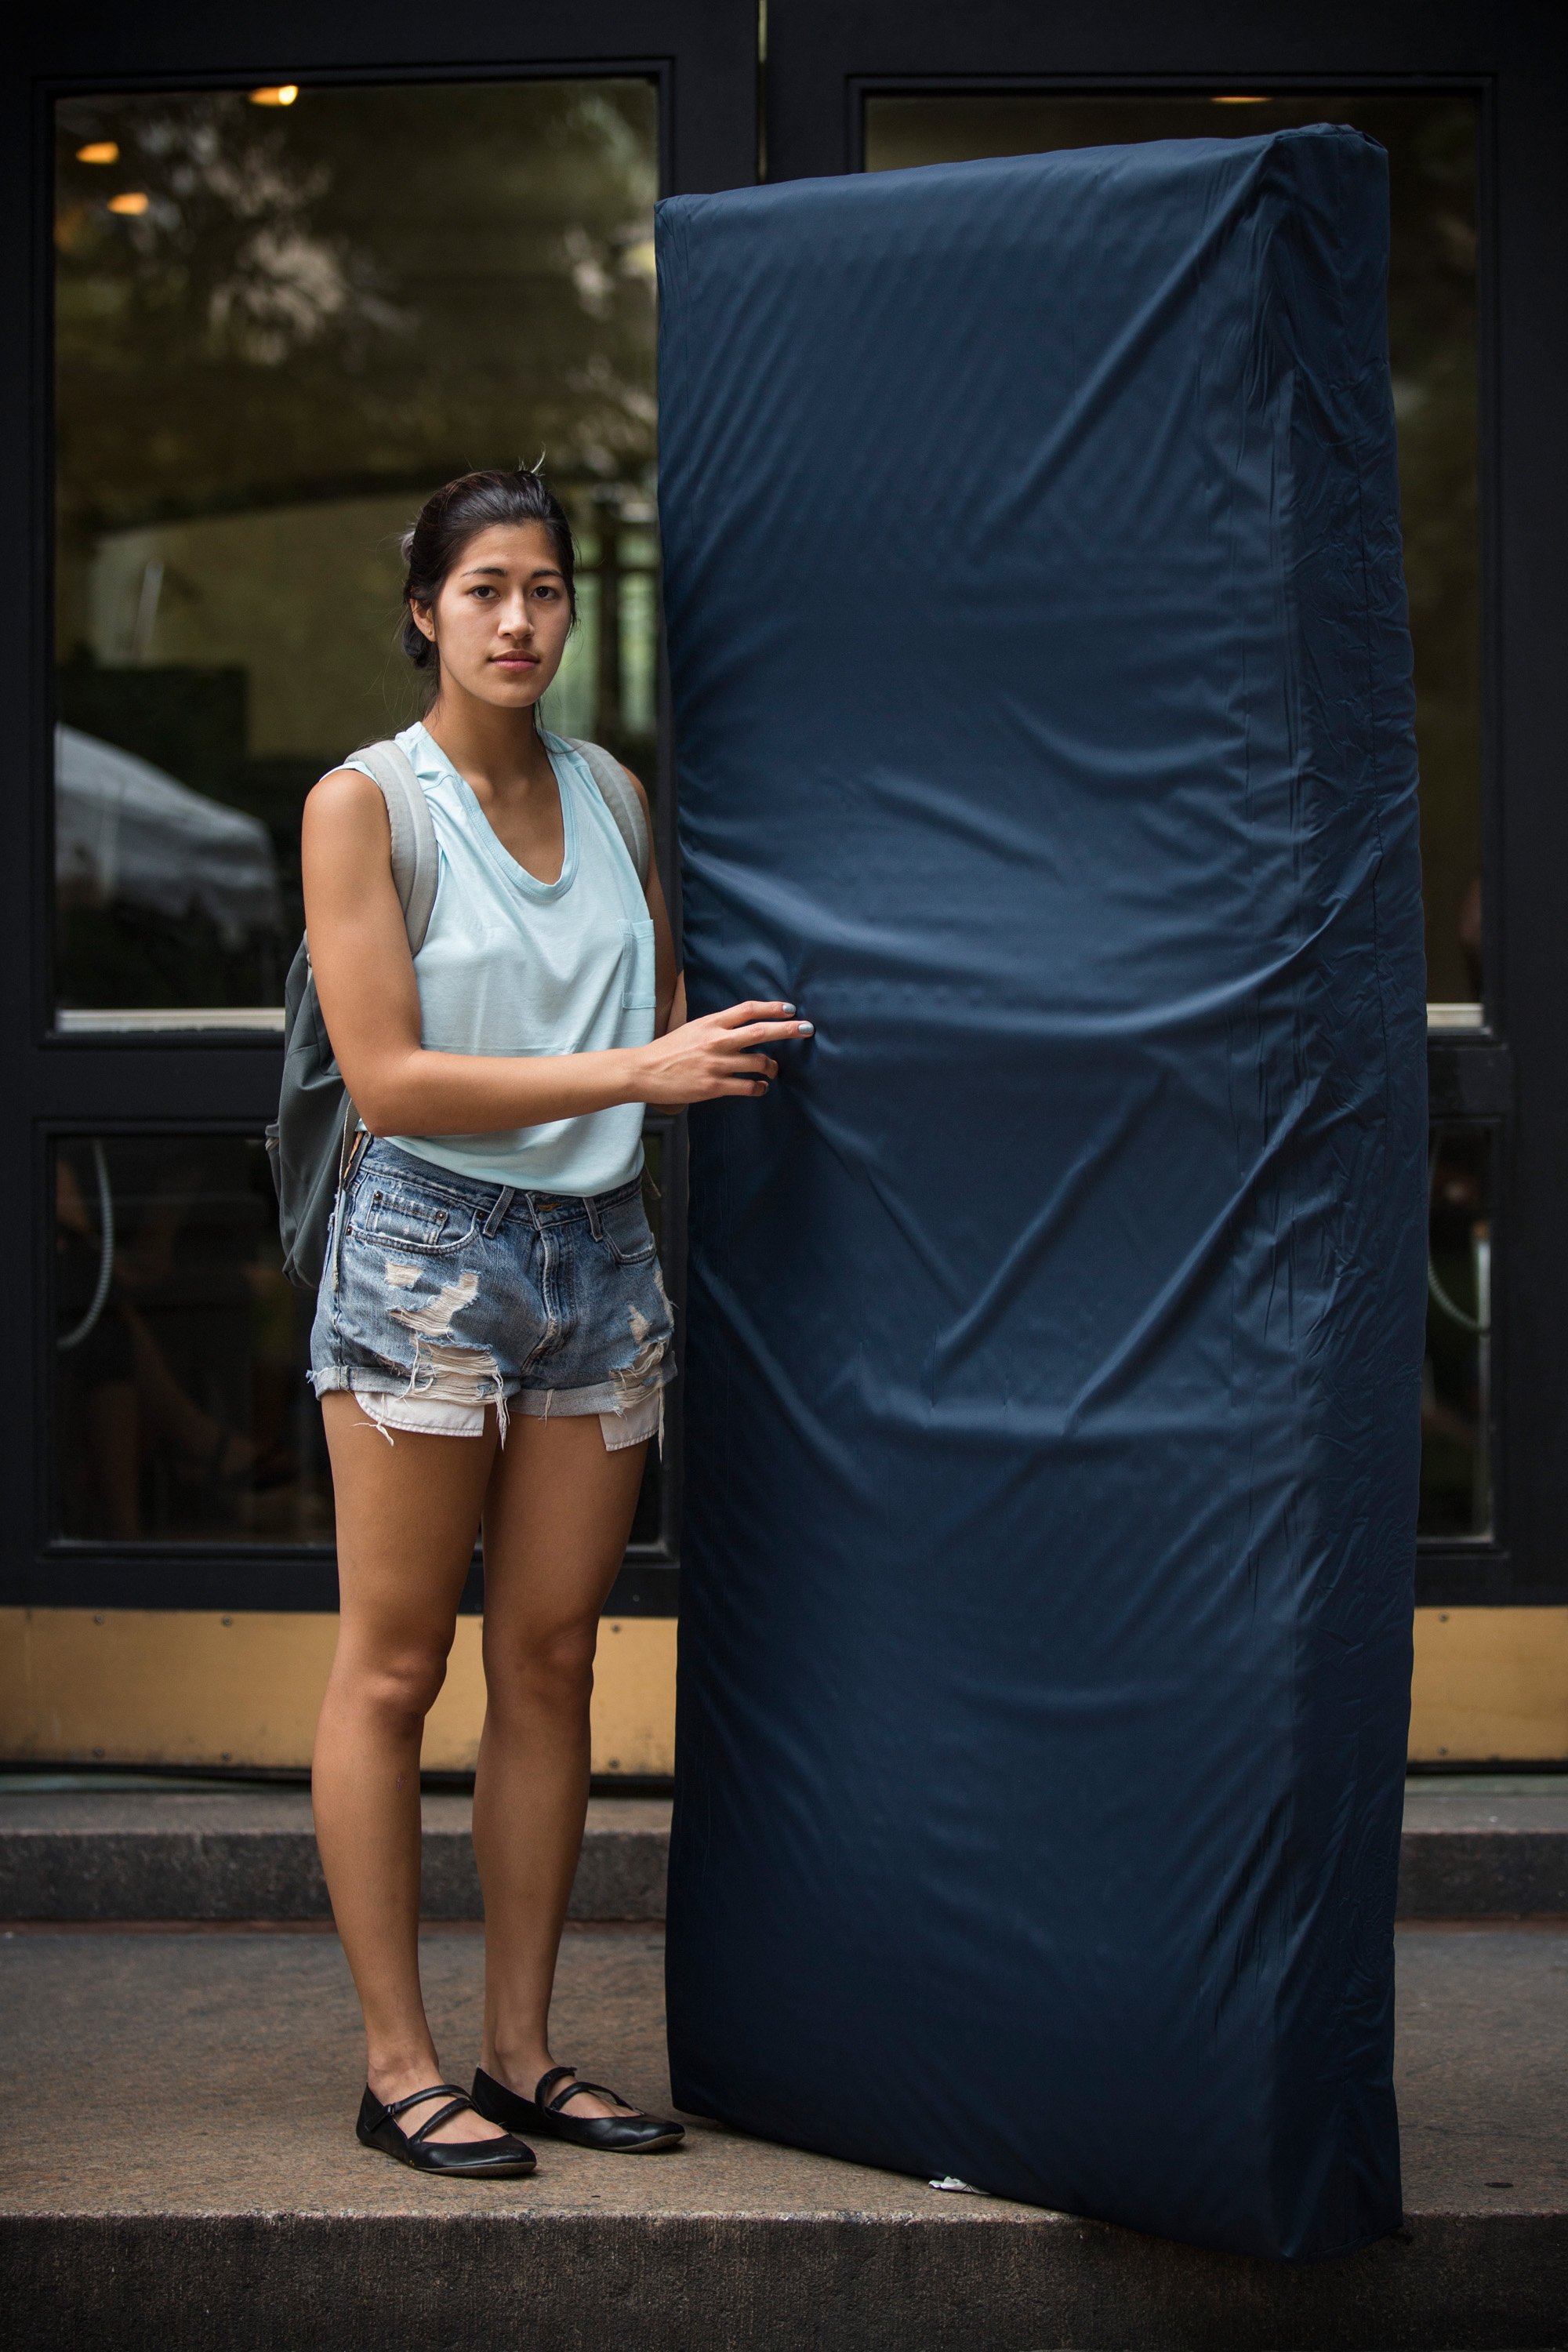 Emma Sulkowicz, a senior visual arts student at Columbia University, poses with a mattress, which she says she will carry every where she goes in protest of the university's lack of action after she reported being raped during her sophomore year, on September 5, 2014 in New York City. (Andrew Burton--Getty Images)